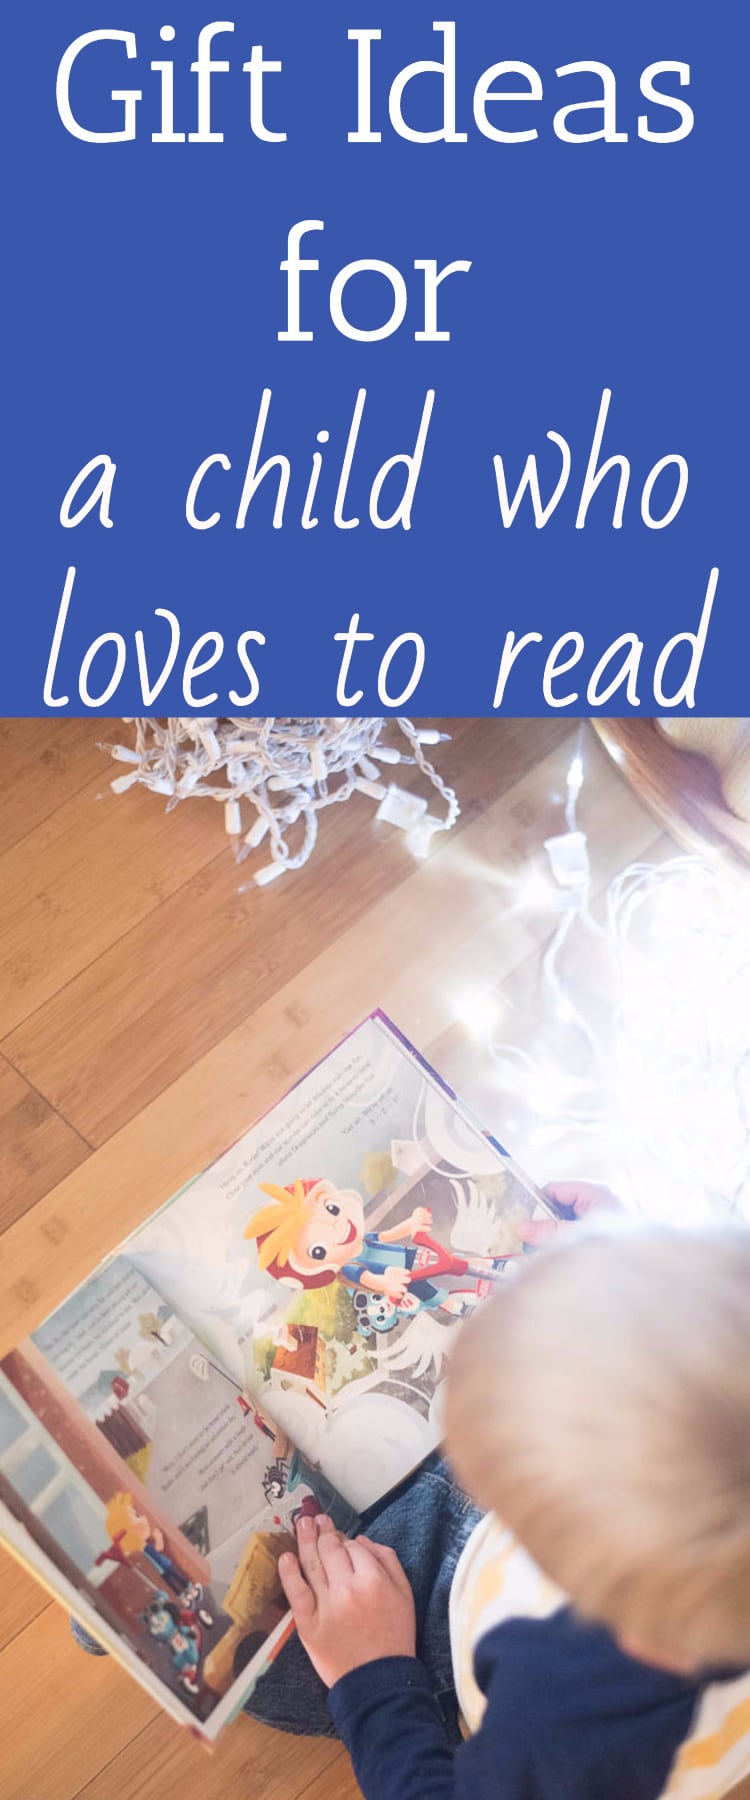 kid gift ideas / gift ideas for kids / book gift ideas / #book #bookworm #reading #child #giftideas